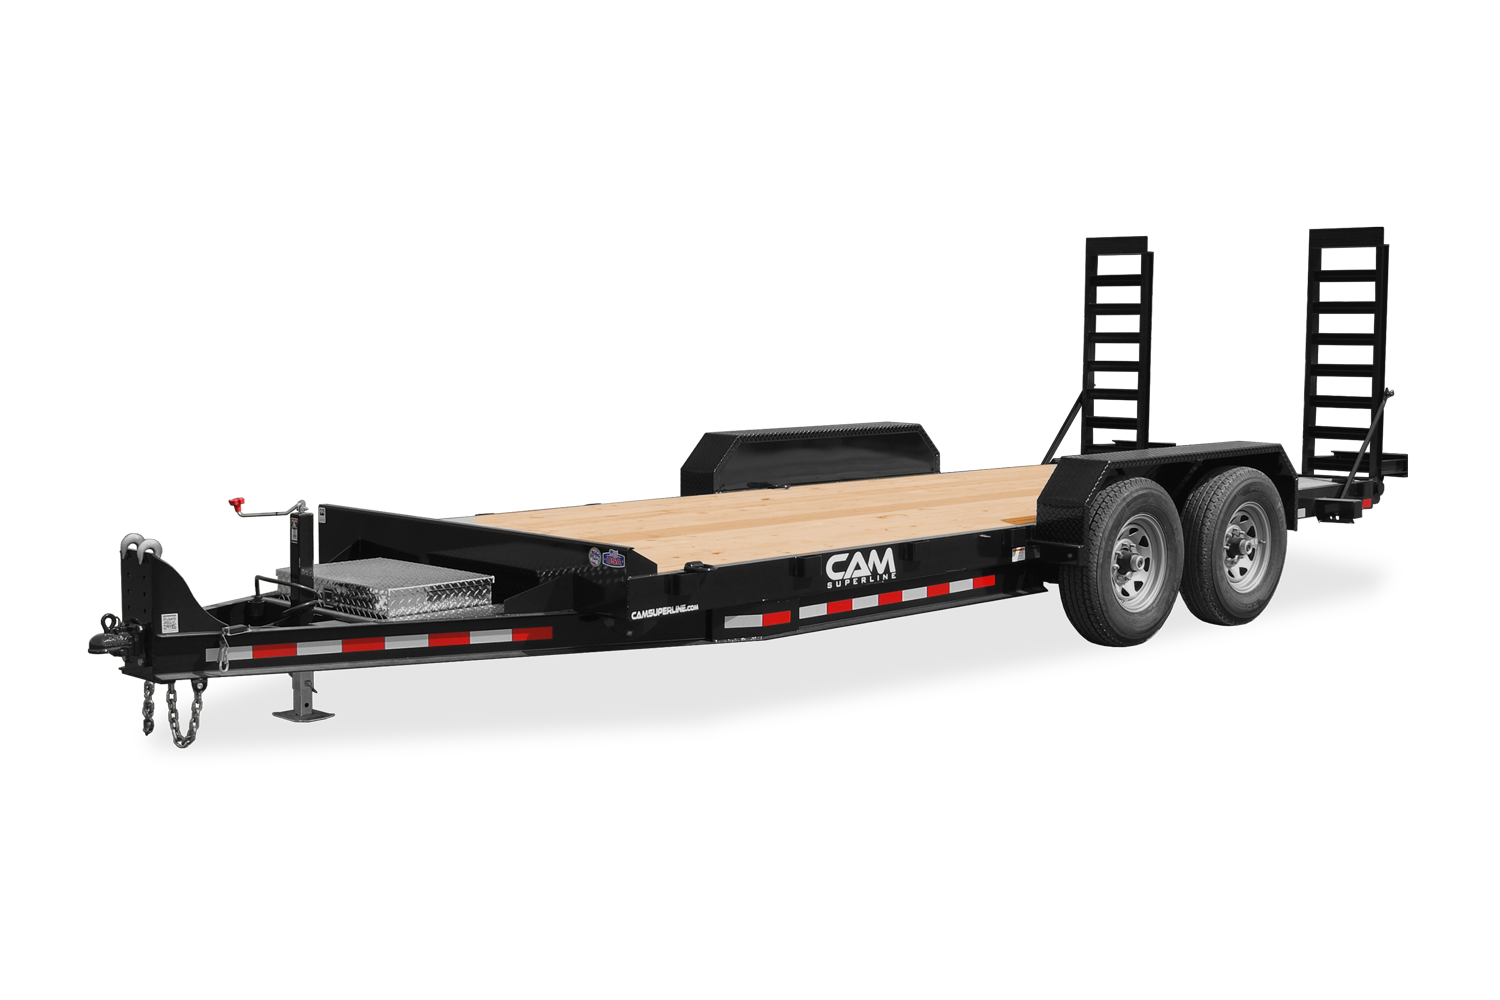 2020 Cam Superline 7 Ton Equipment Hauler Channel 8.5 x 18